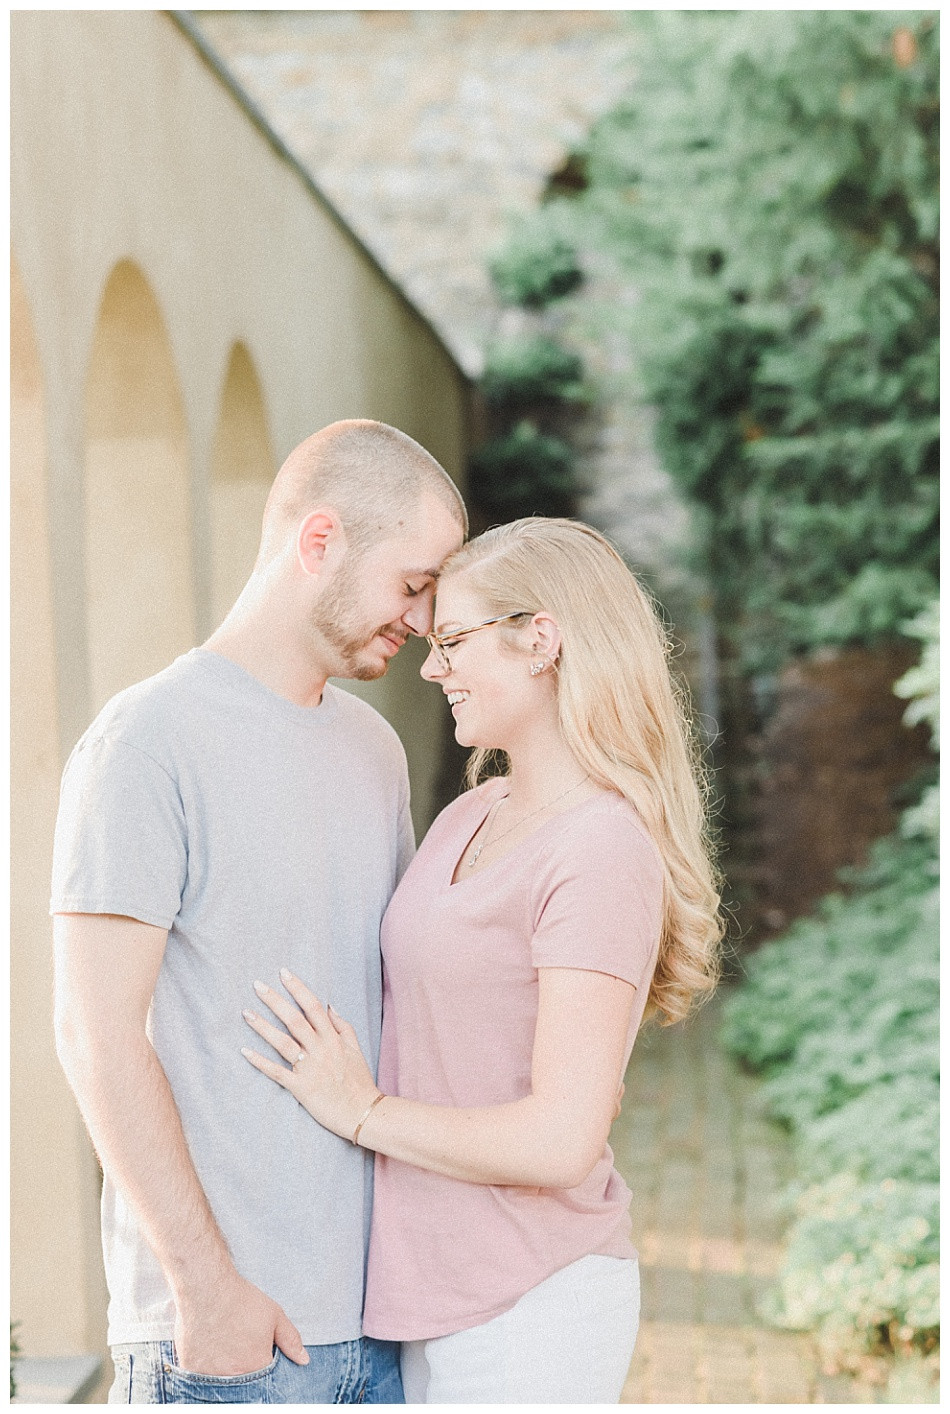 Couple forehead to forehead, gray shirt pink, Summer Engagement Session at Conestoga House and Gardens captured by Angela Weiler Photography - Fine Art Wedding and Lifestyle Photographer from Lancaster Pennsylvania.